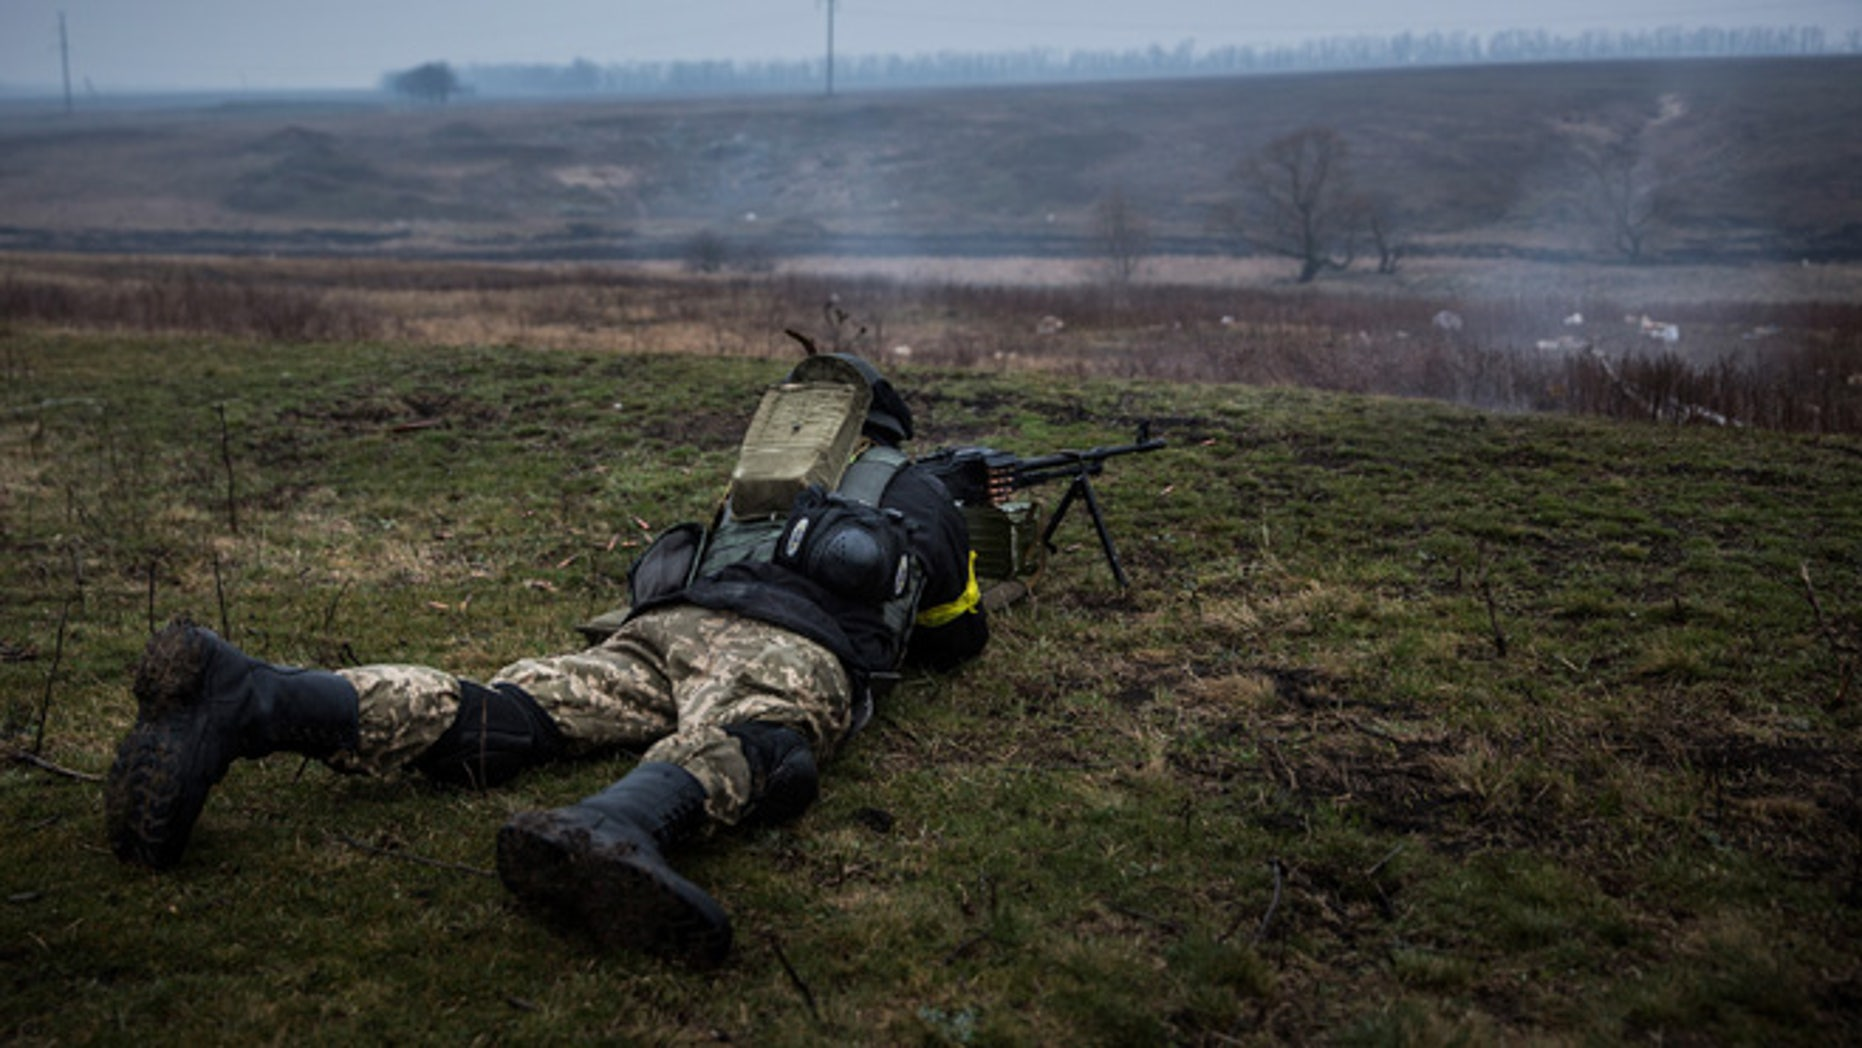 Ukrainian troops from Donbass battalion train with small arms on March 13, 2015 outside Mariupol, Ukraine.